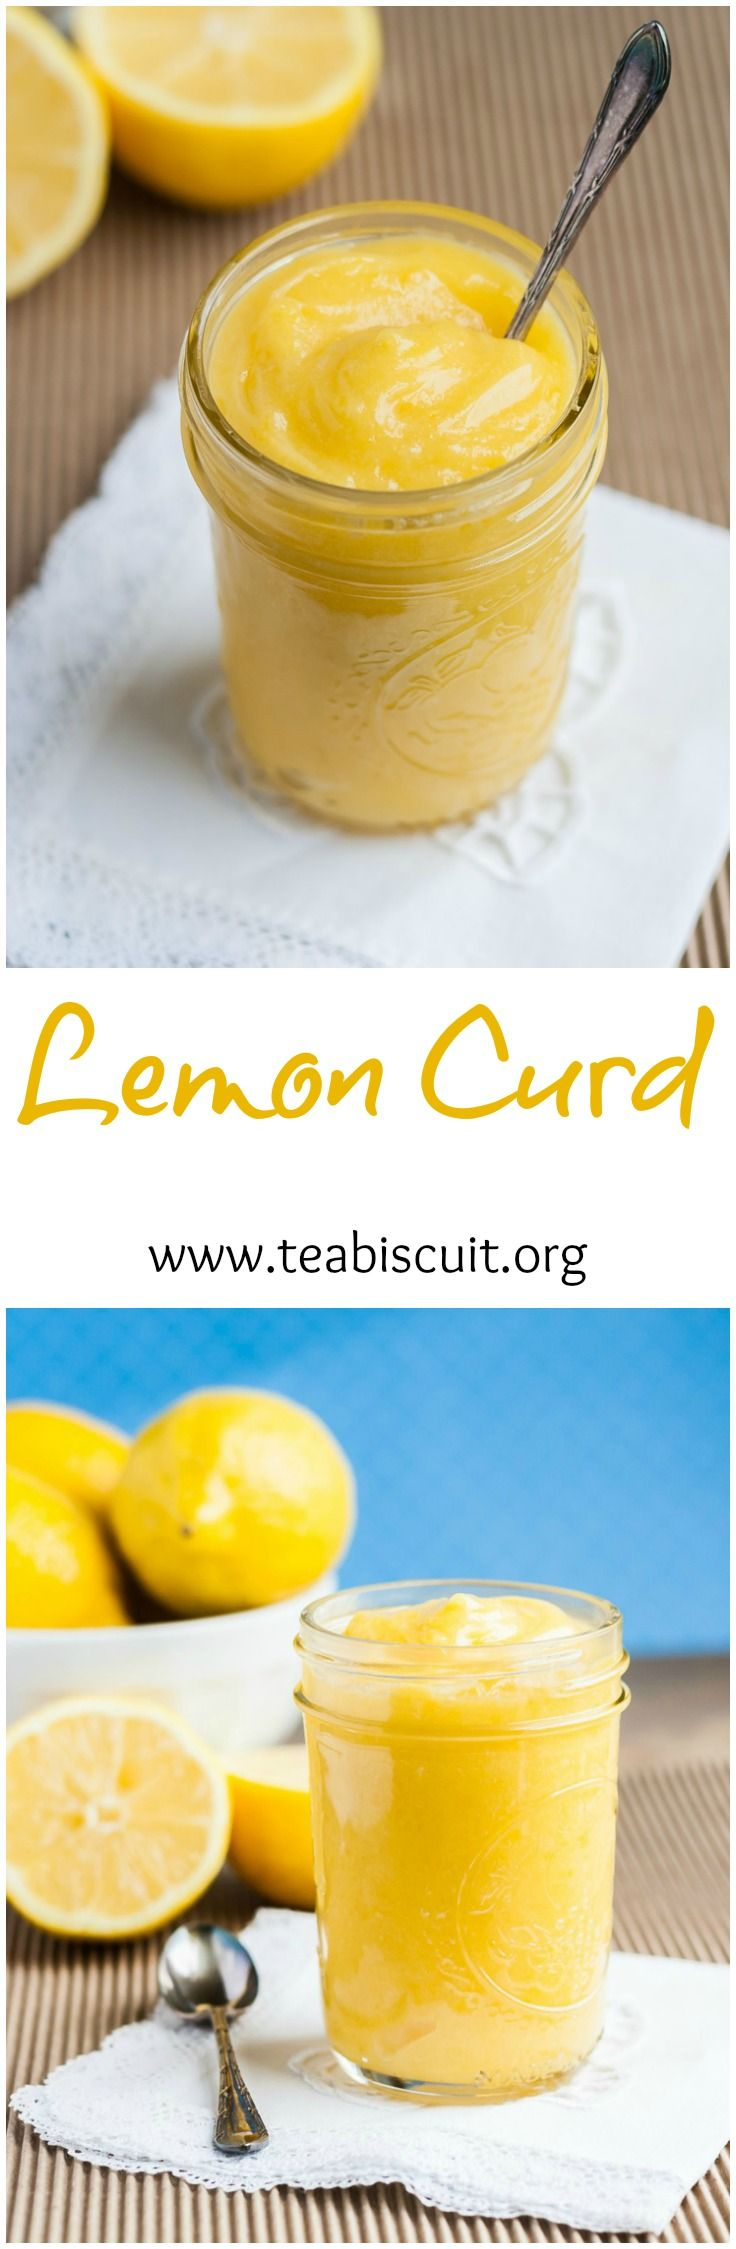 Quick and Easy recipe for Lemon Curd that can be made dairy free or with butter | https://www.teabiscuit.org